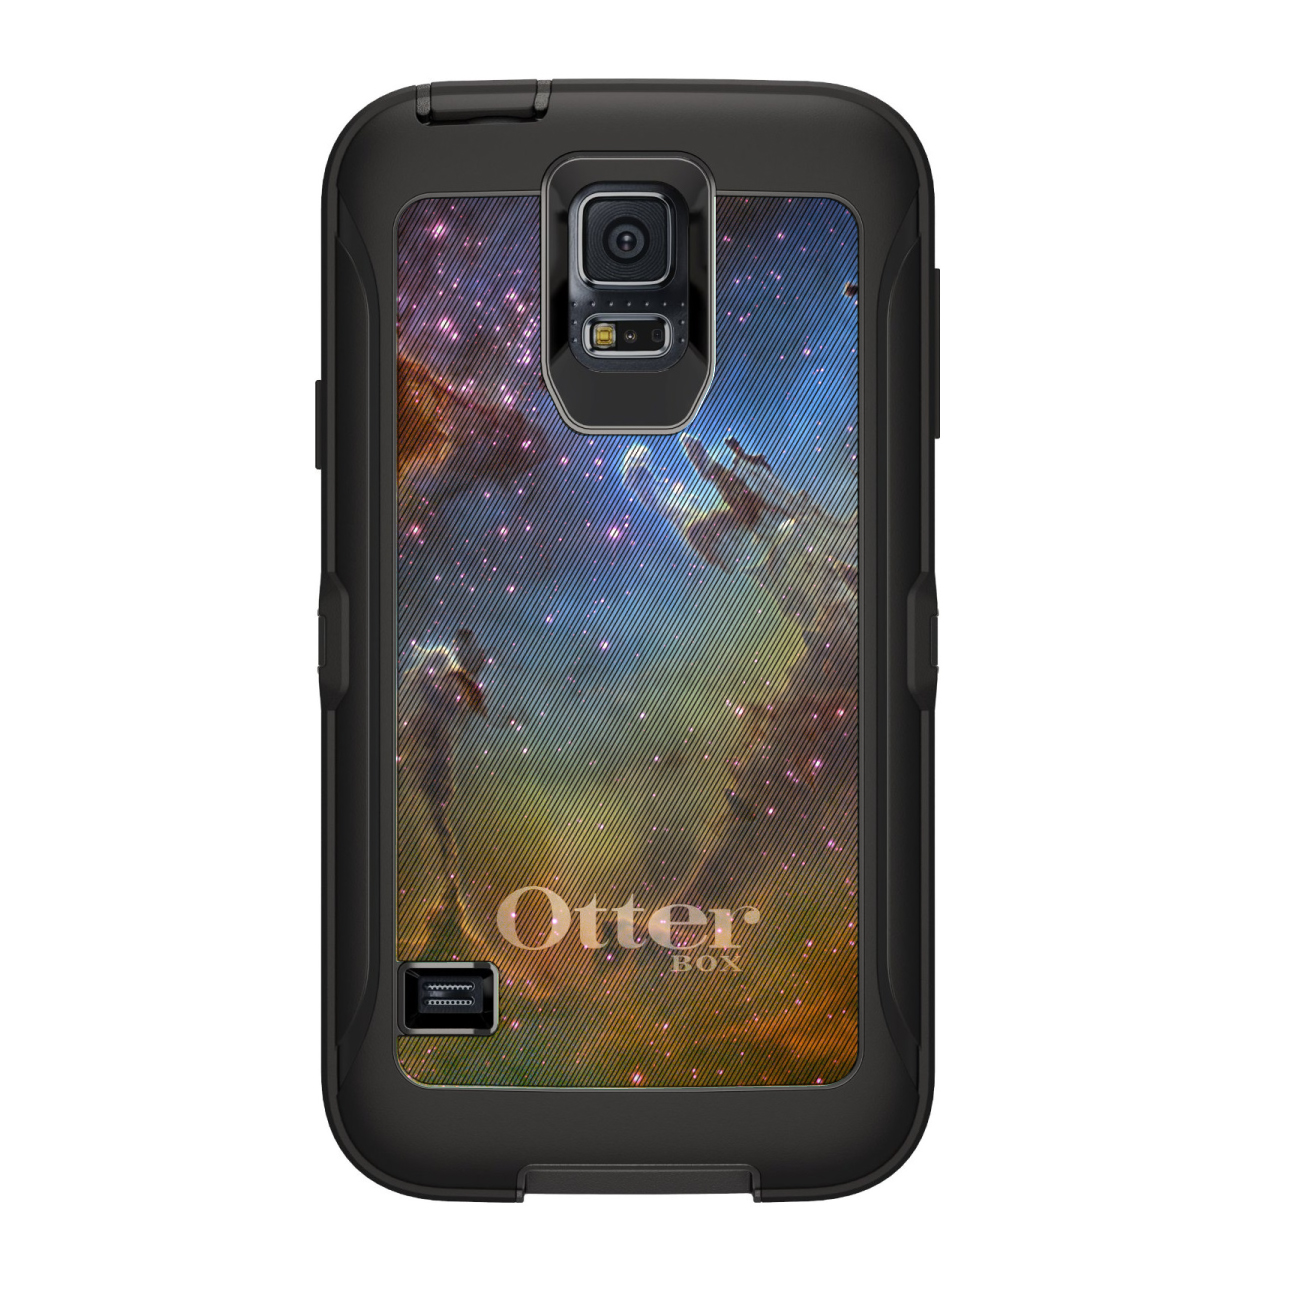 DistinctInk™ Custom Black OtterBox Defender Series Case for Samsung Galaxy S5 - Eagle Nebula Orange Blue